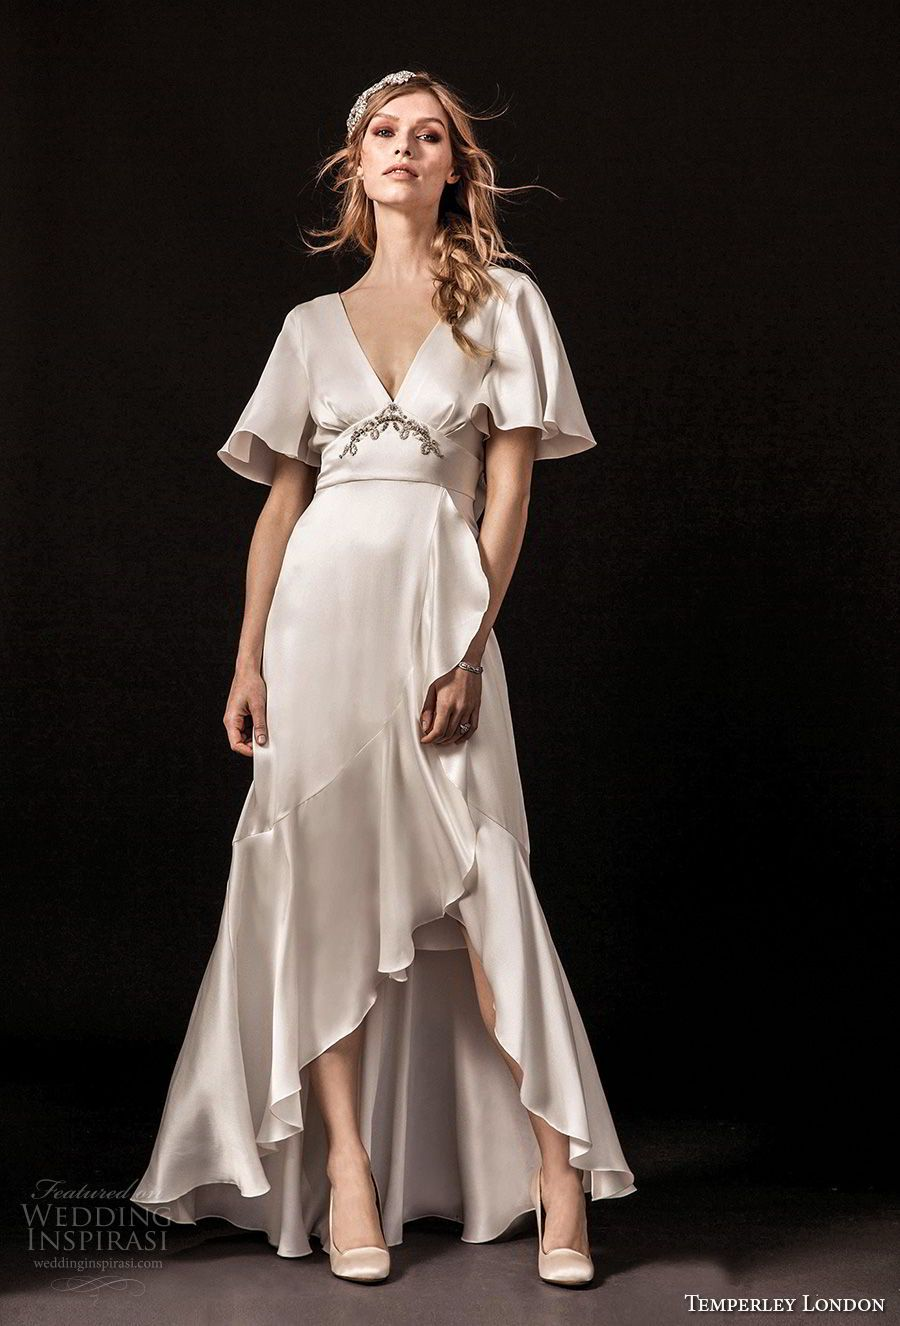 Couture wedding dresses london  Temperley London Spring  Wedding Dresses u ucDahliaud Bridal